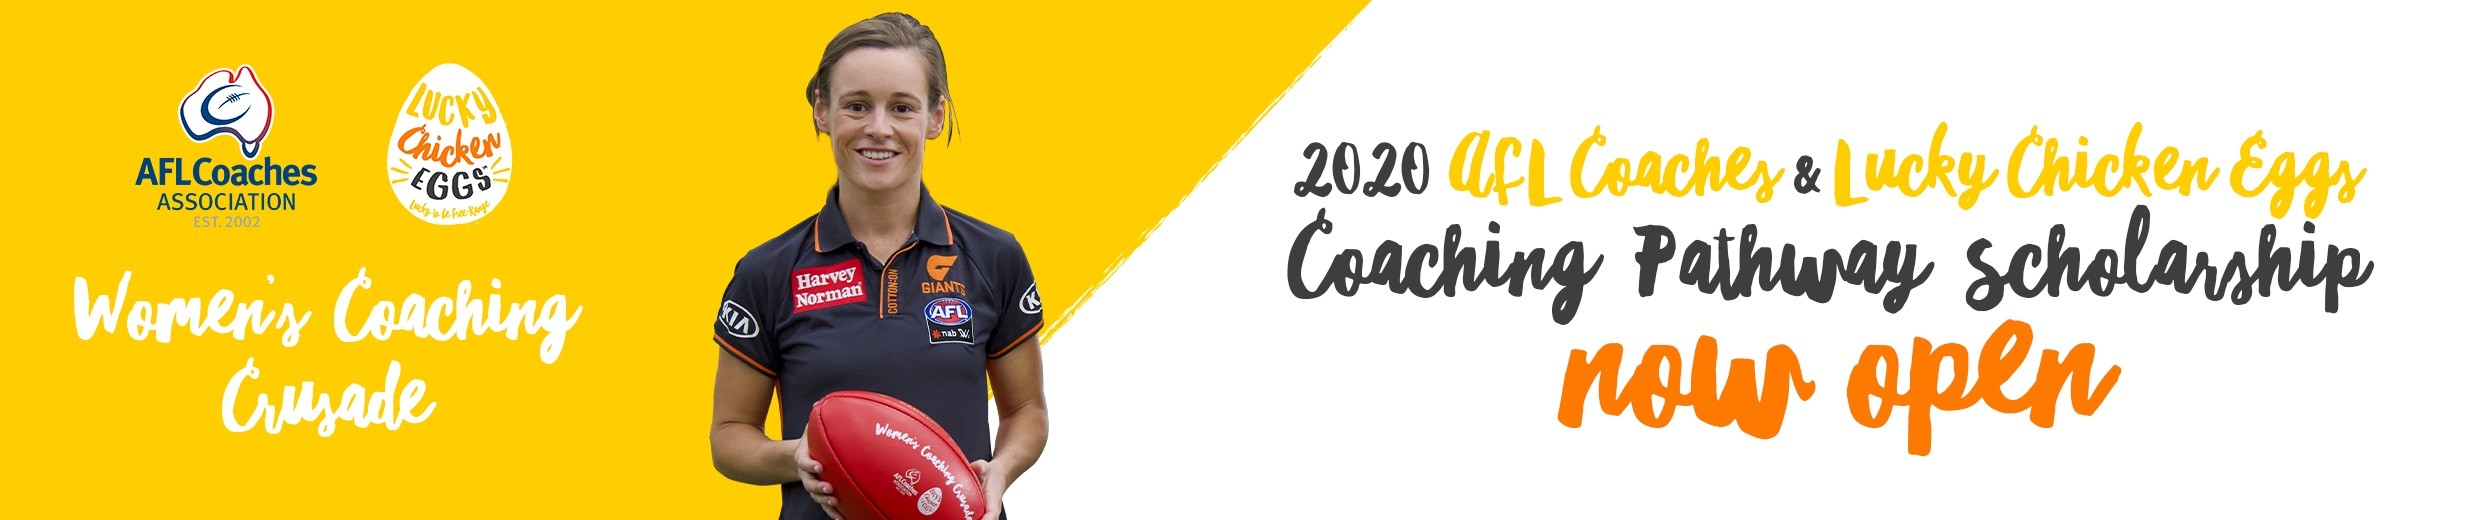 AFL Coaches heading image